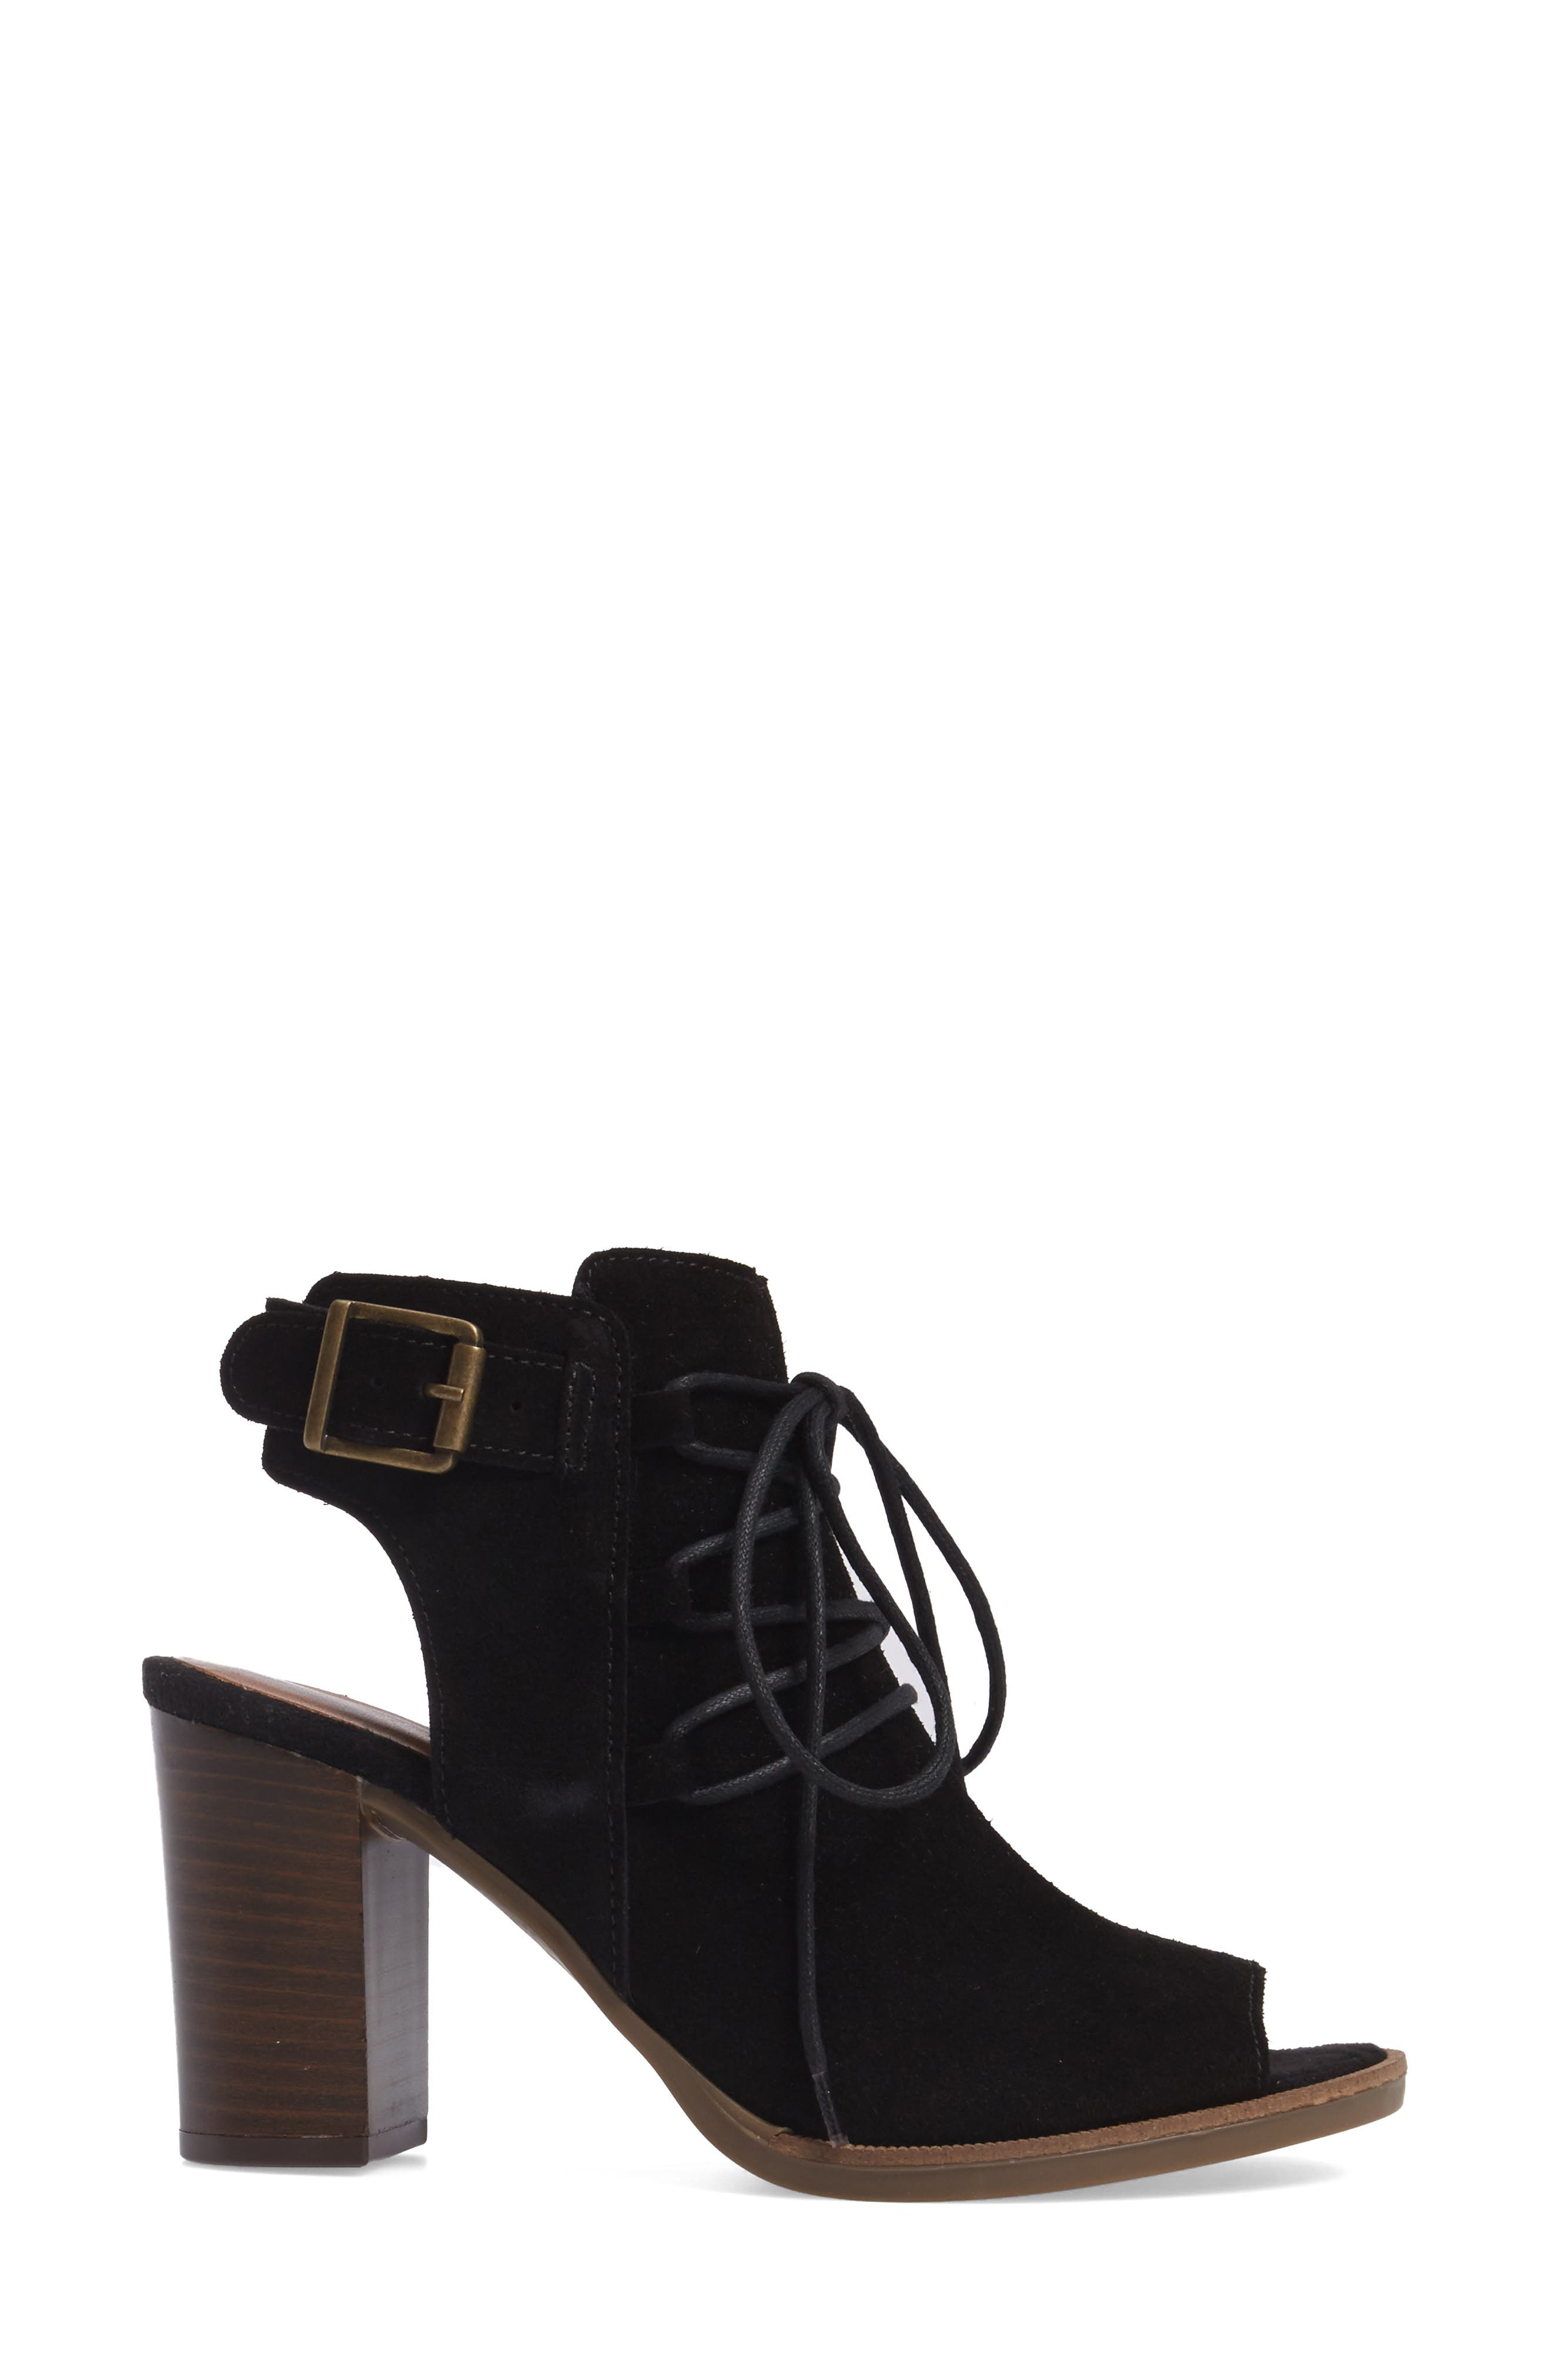 Pru Lace-Up Peep Toe Bootie,                             Alternate thumbnail 3, color,                             018